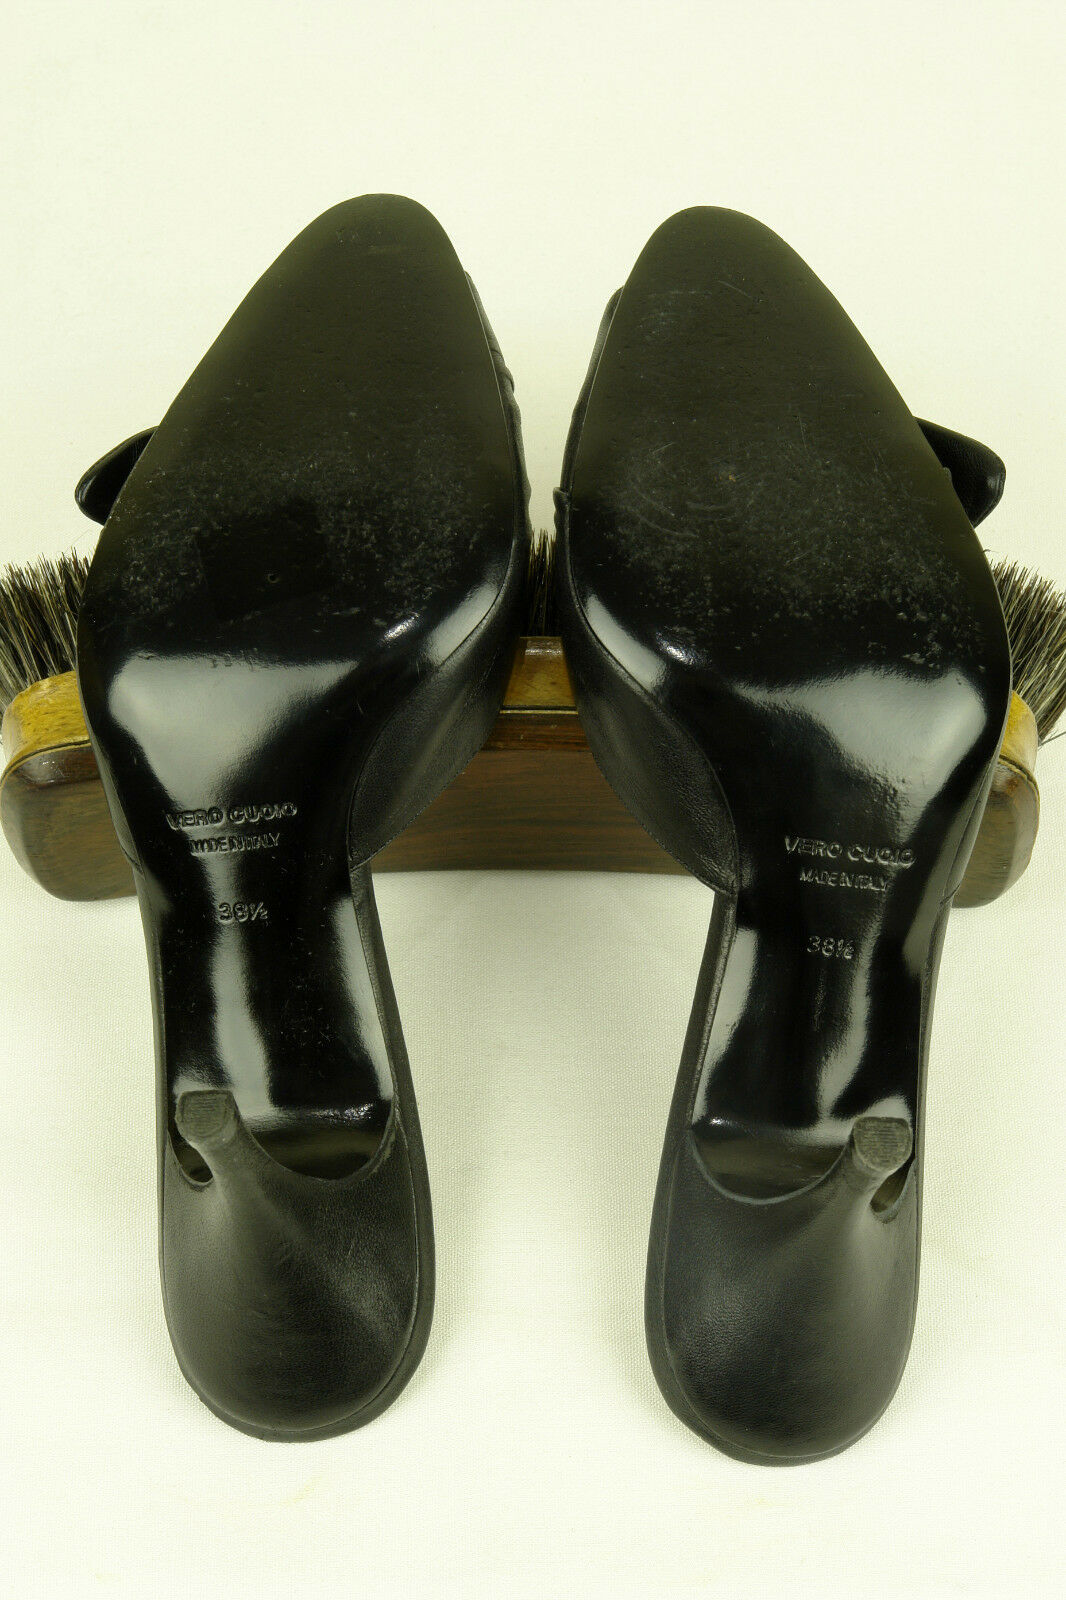 BETTYE MULLER   ITALY     SUBLIME MULE IN schwarz NAPA sz 38.5   SUPERB 1f2f45